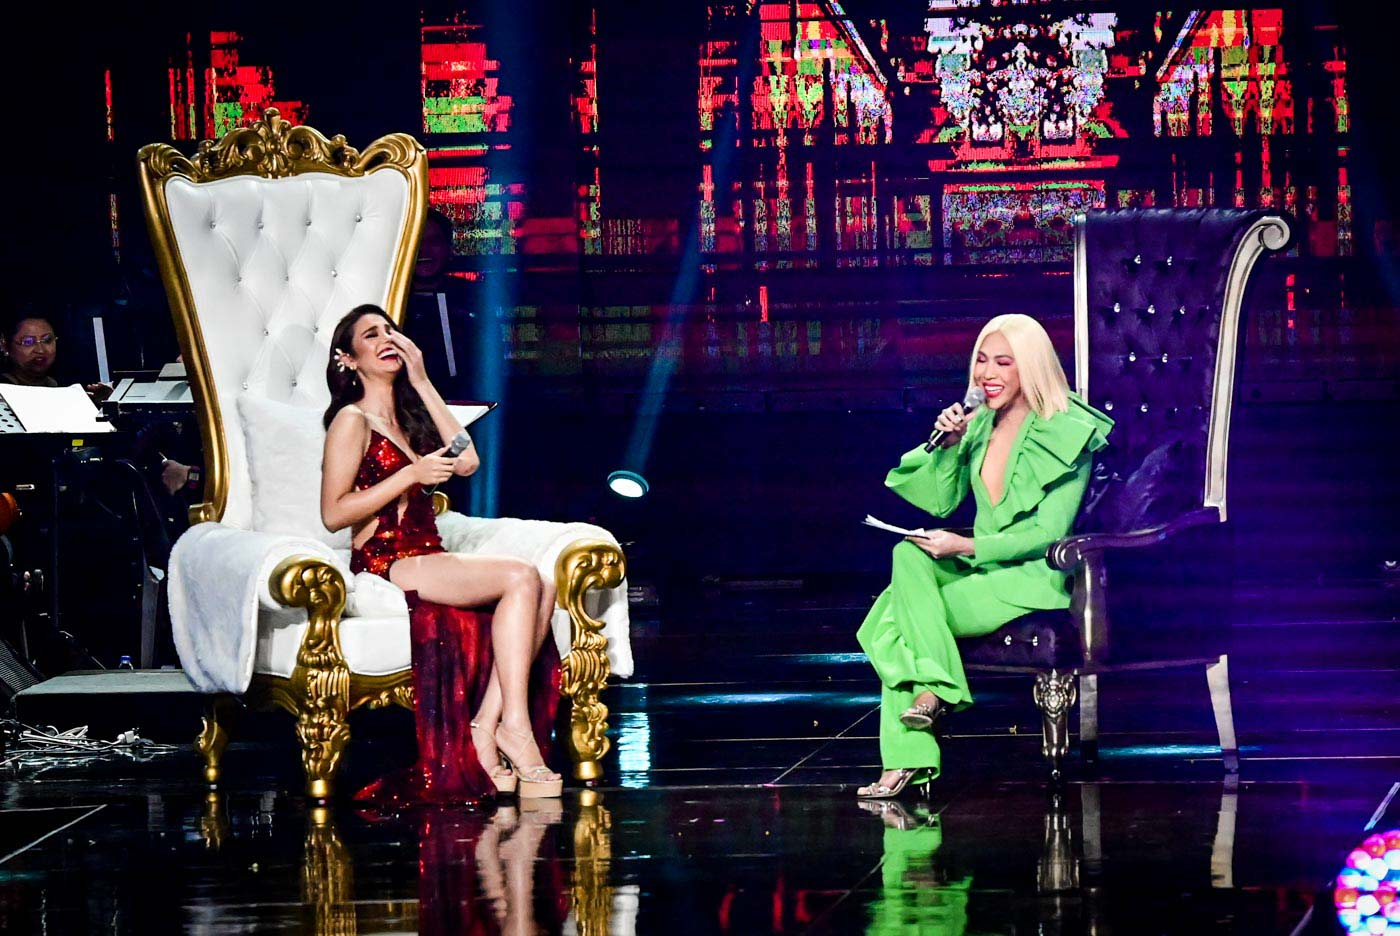 HOT SEAT. Catriona find herself in the hot seat as Vice Ganda fires questions during his segment.